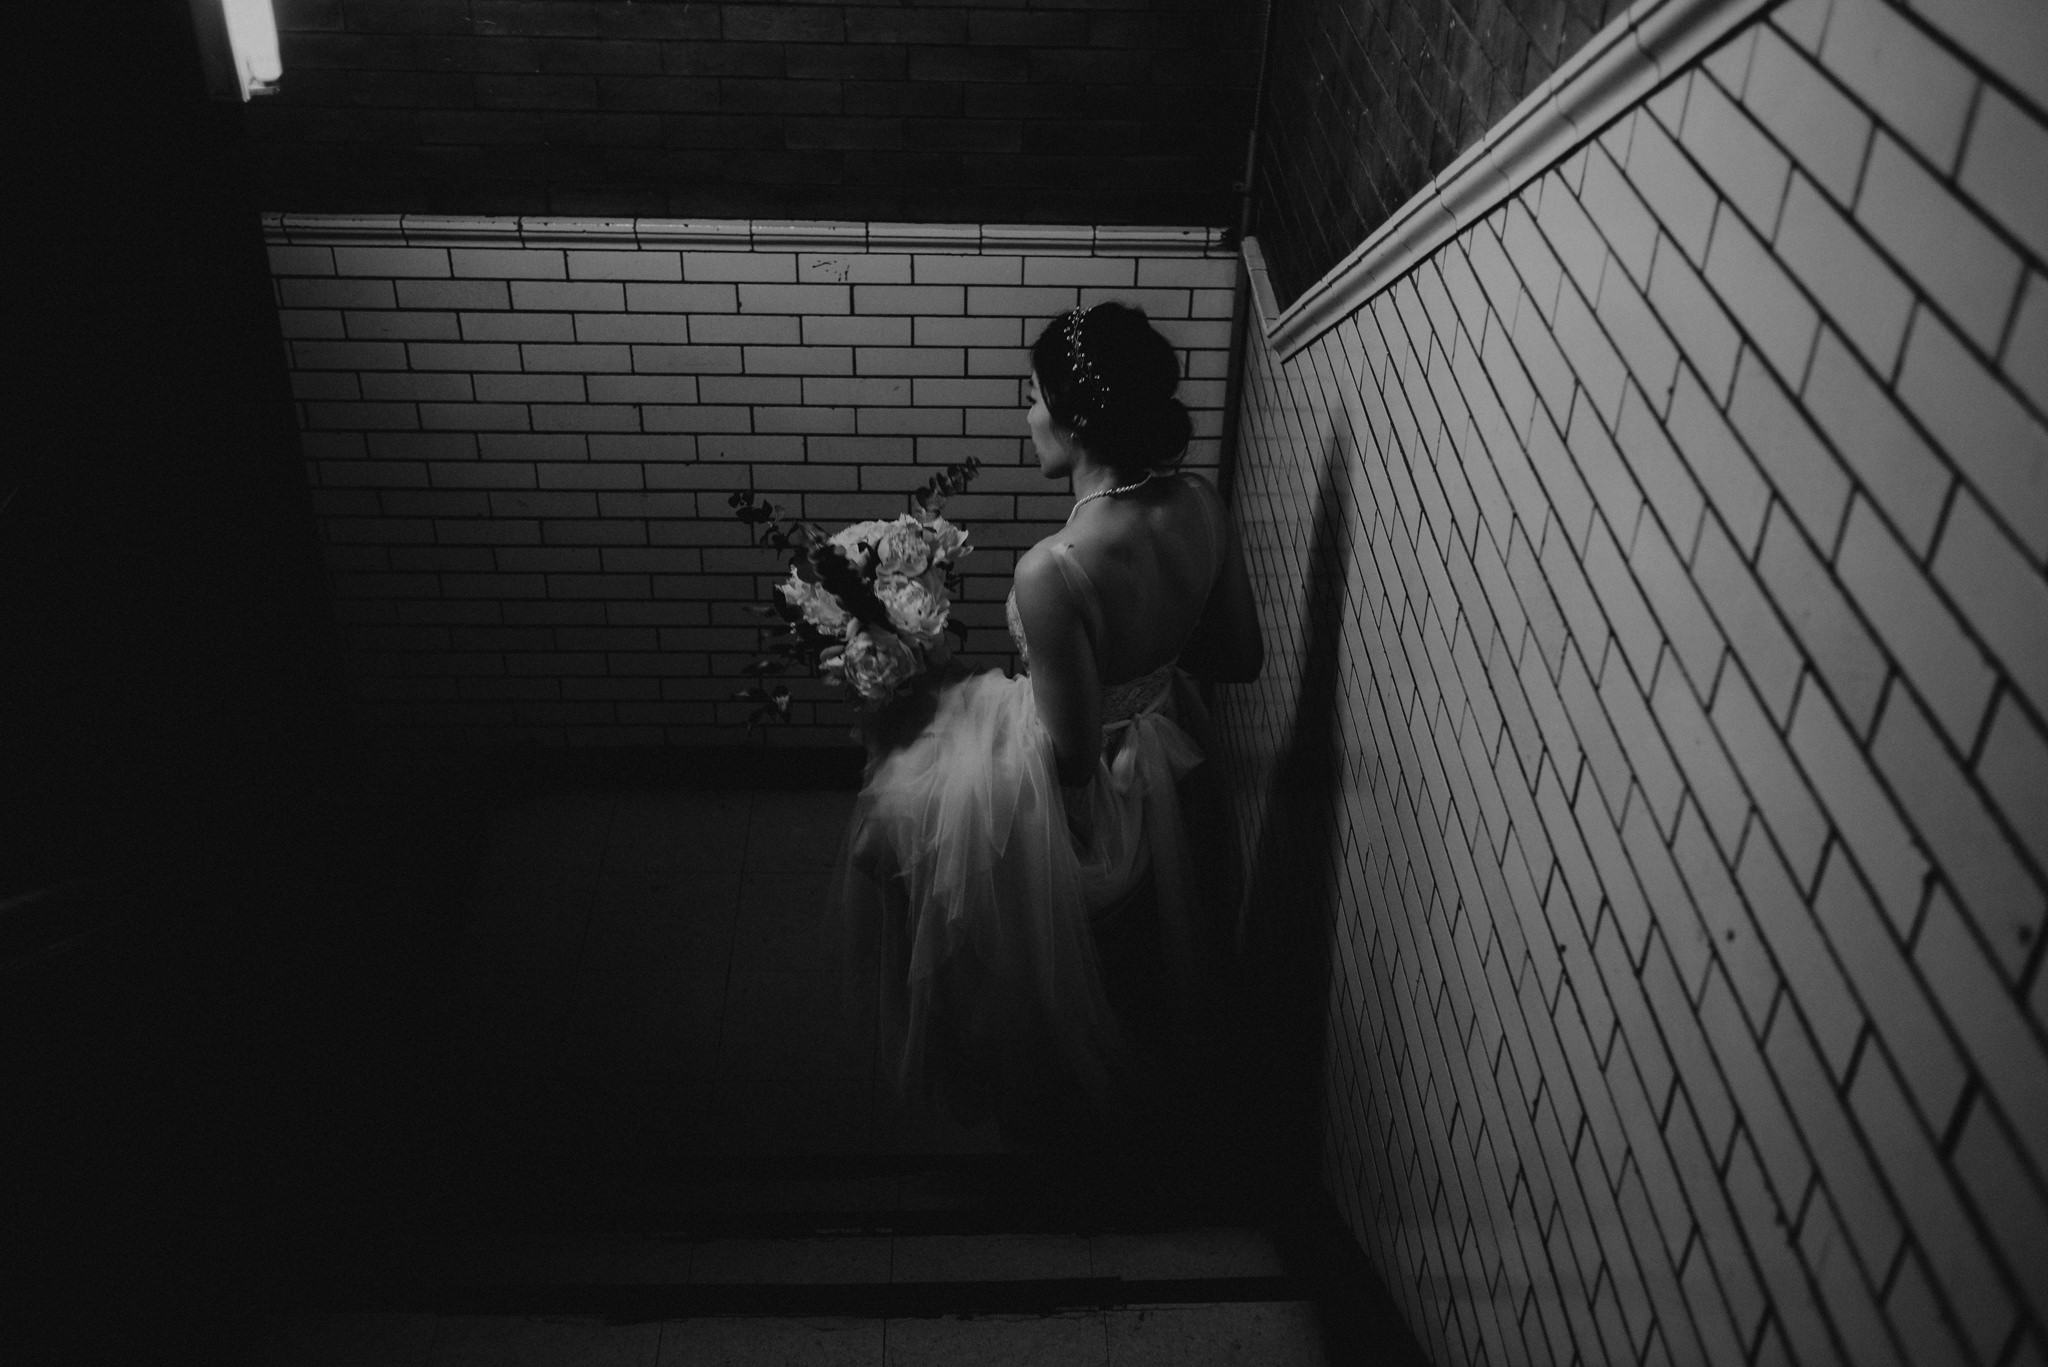 black and white of bride running on wet pavement